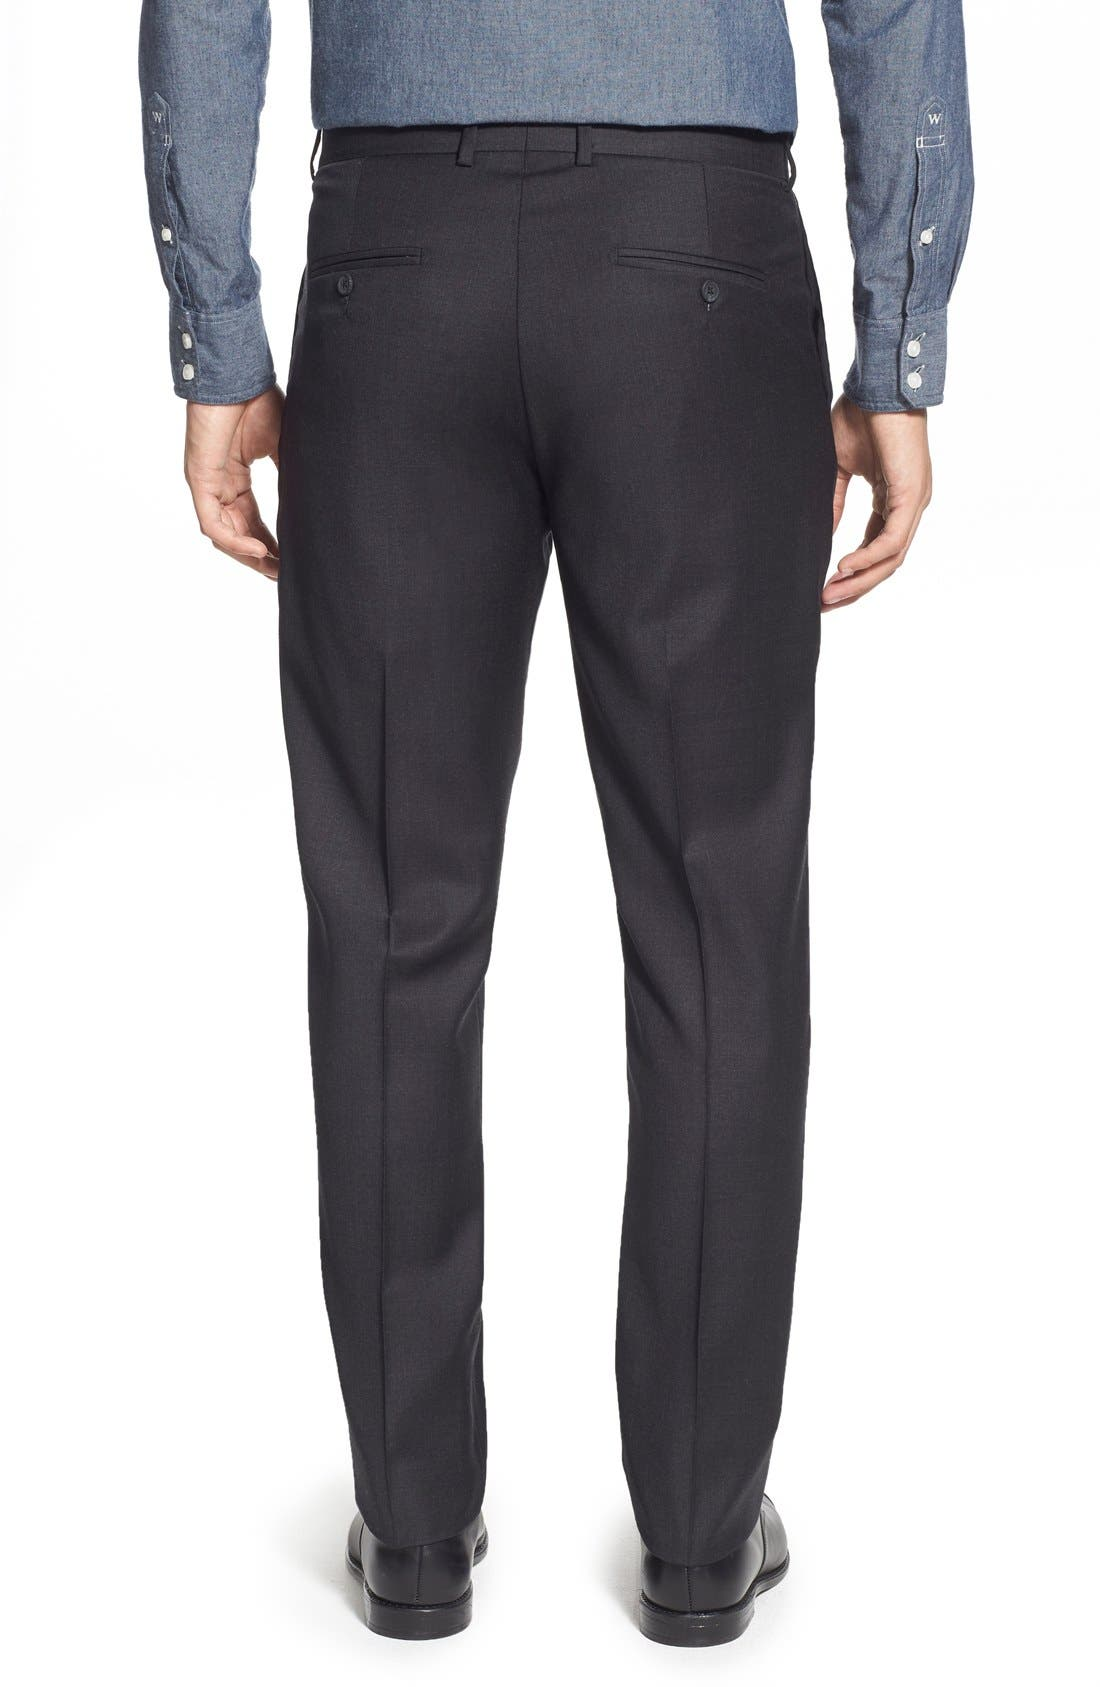 'Dagger' Flat Front Solid Wool Trousers,                             Alternate thumbnail 5, color,                             020